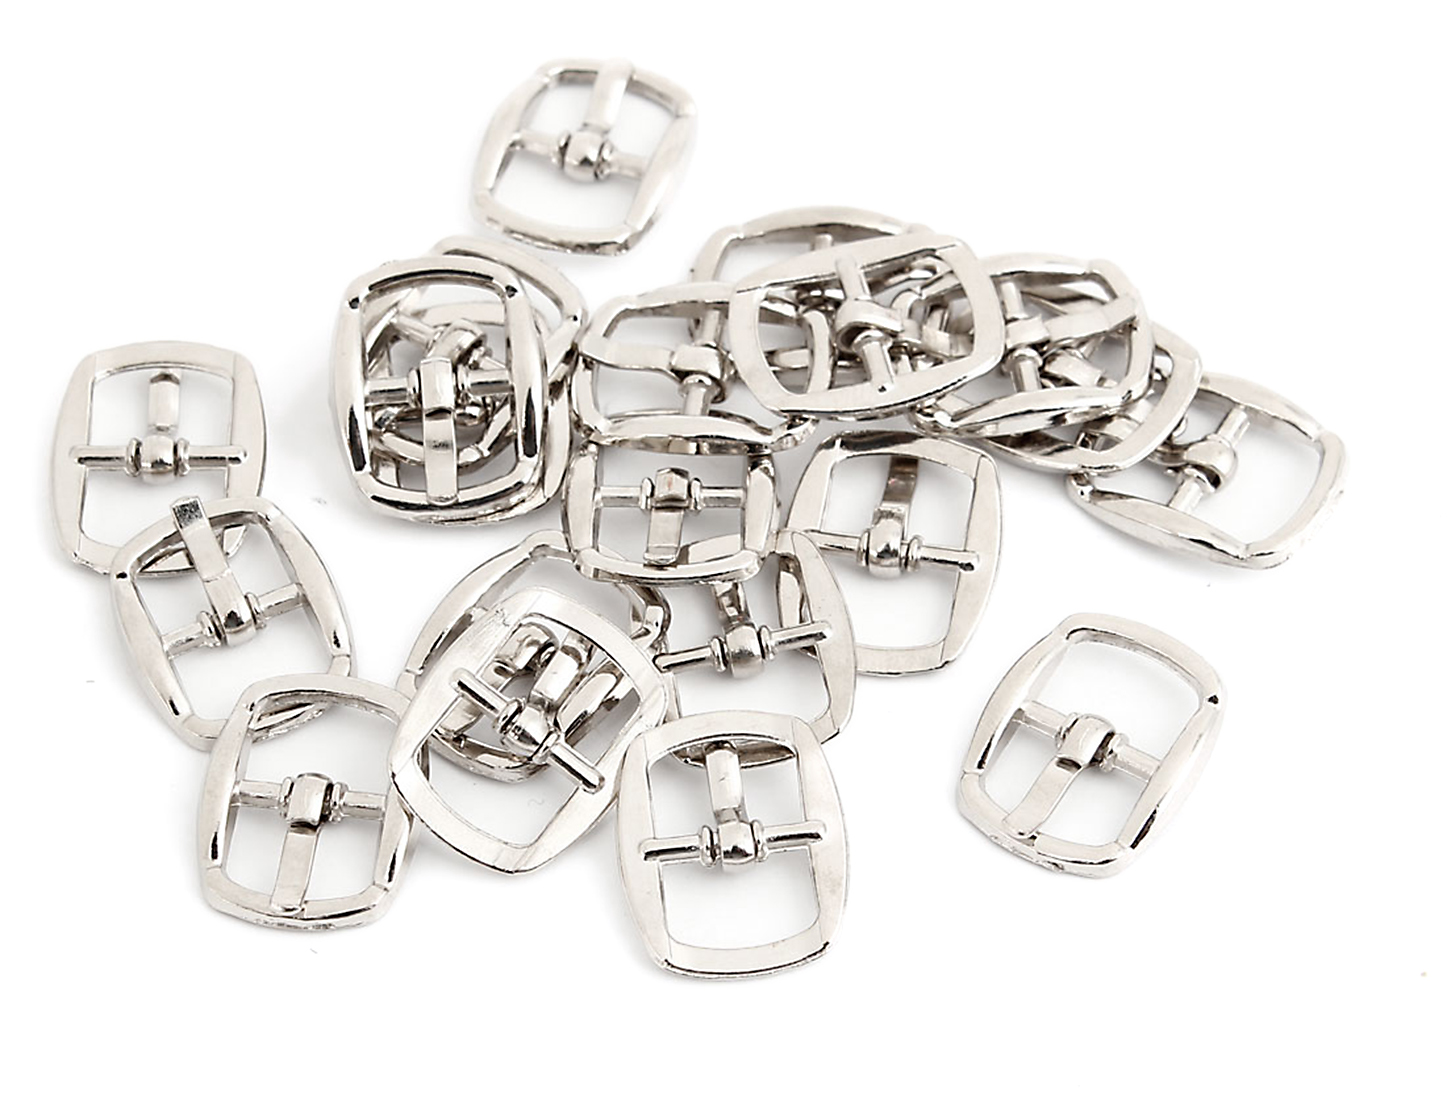 20 Pcs Rectangular Single Prong Pin Buckles for 10mm Wide Shoes Belt